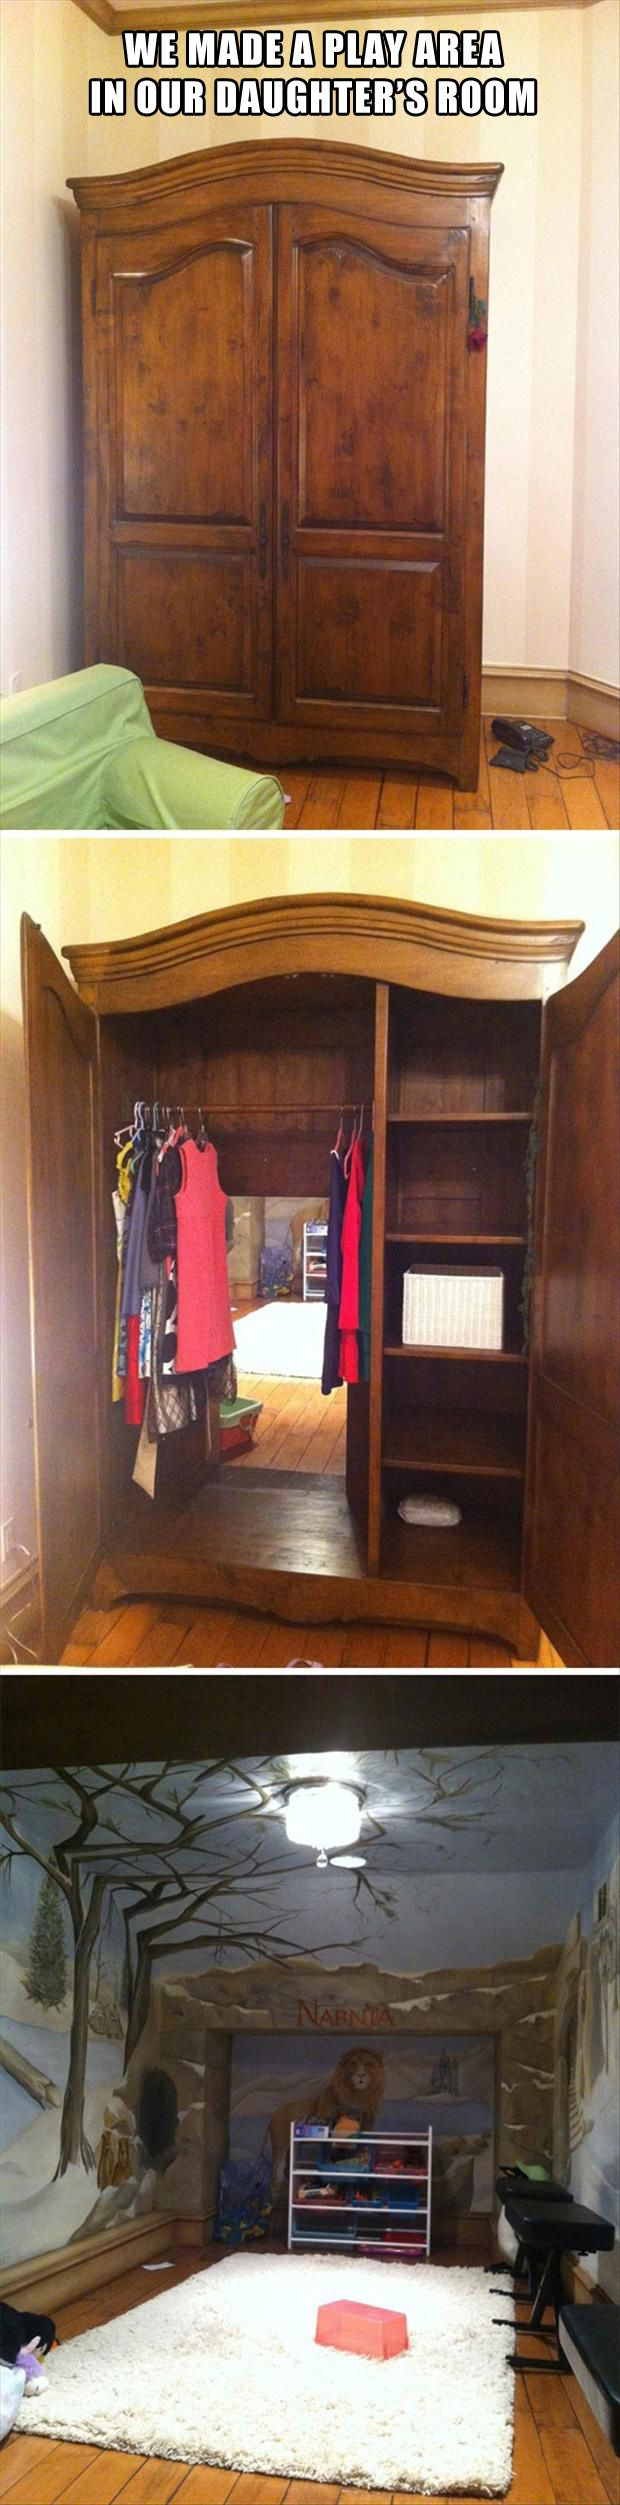 How awesome would it be if the wardrobe led into a hidden play room at the back of the house...